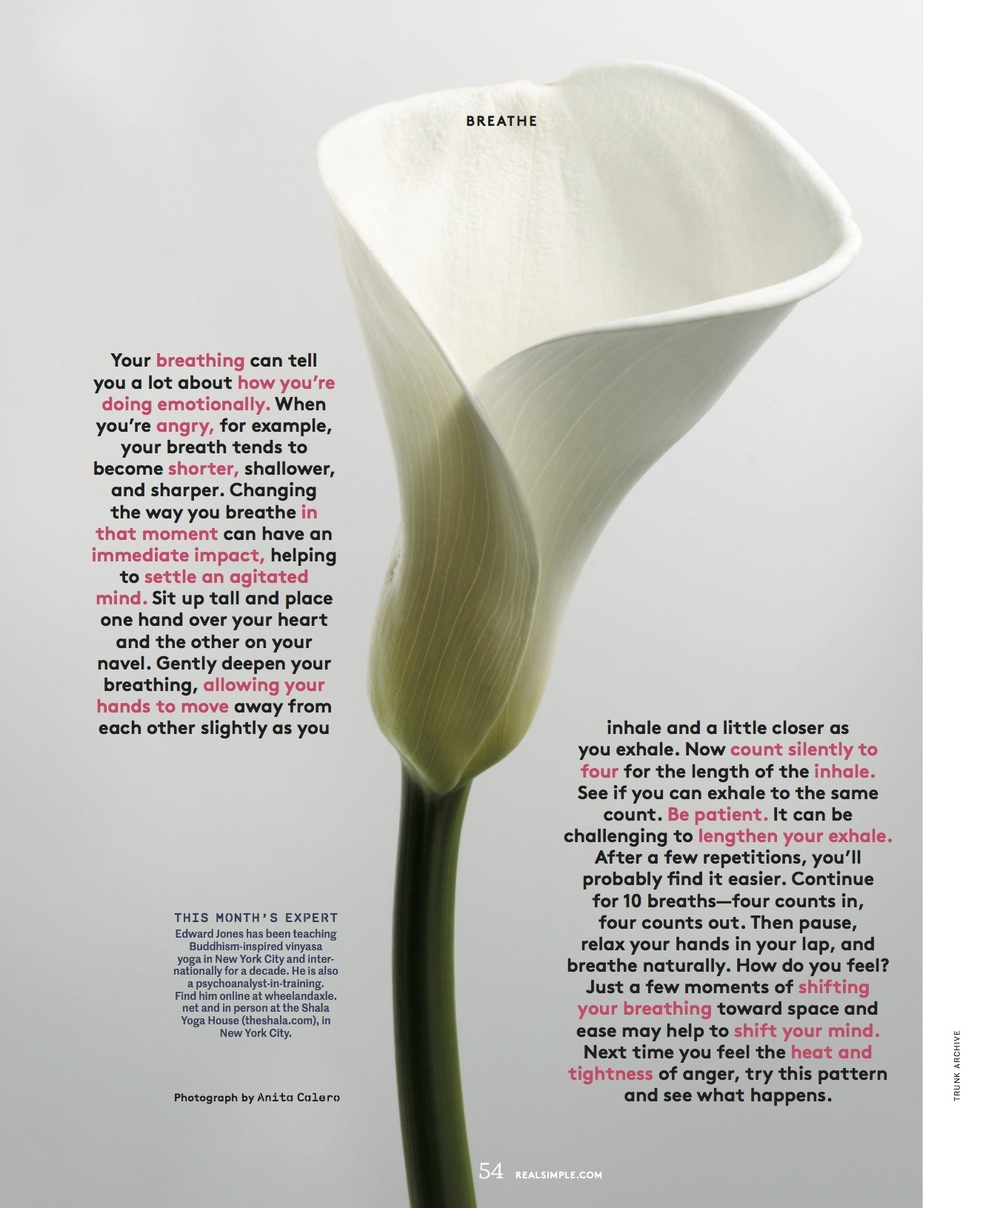 Image courtesy of Real Simple